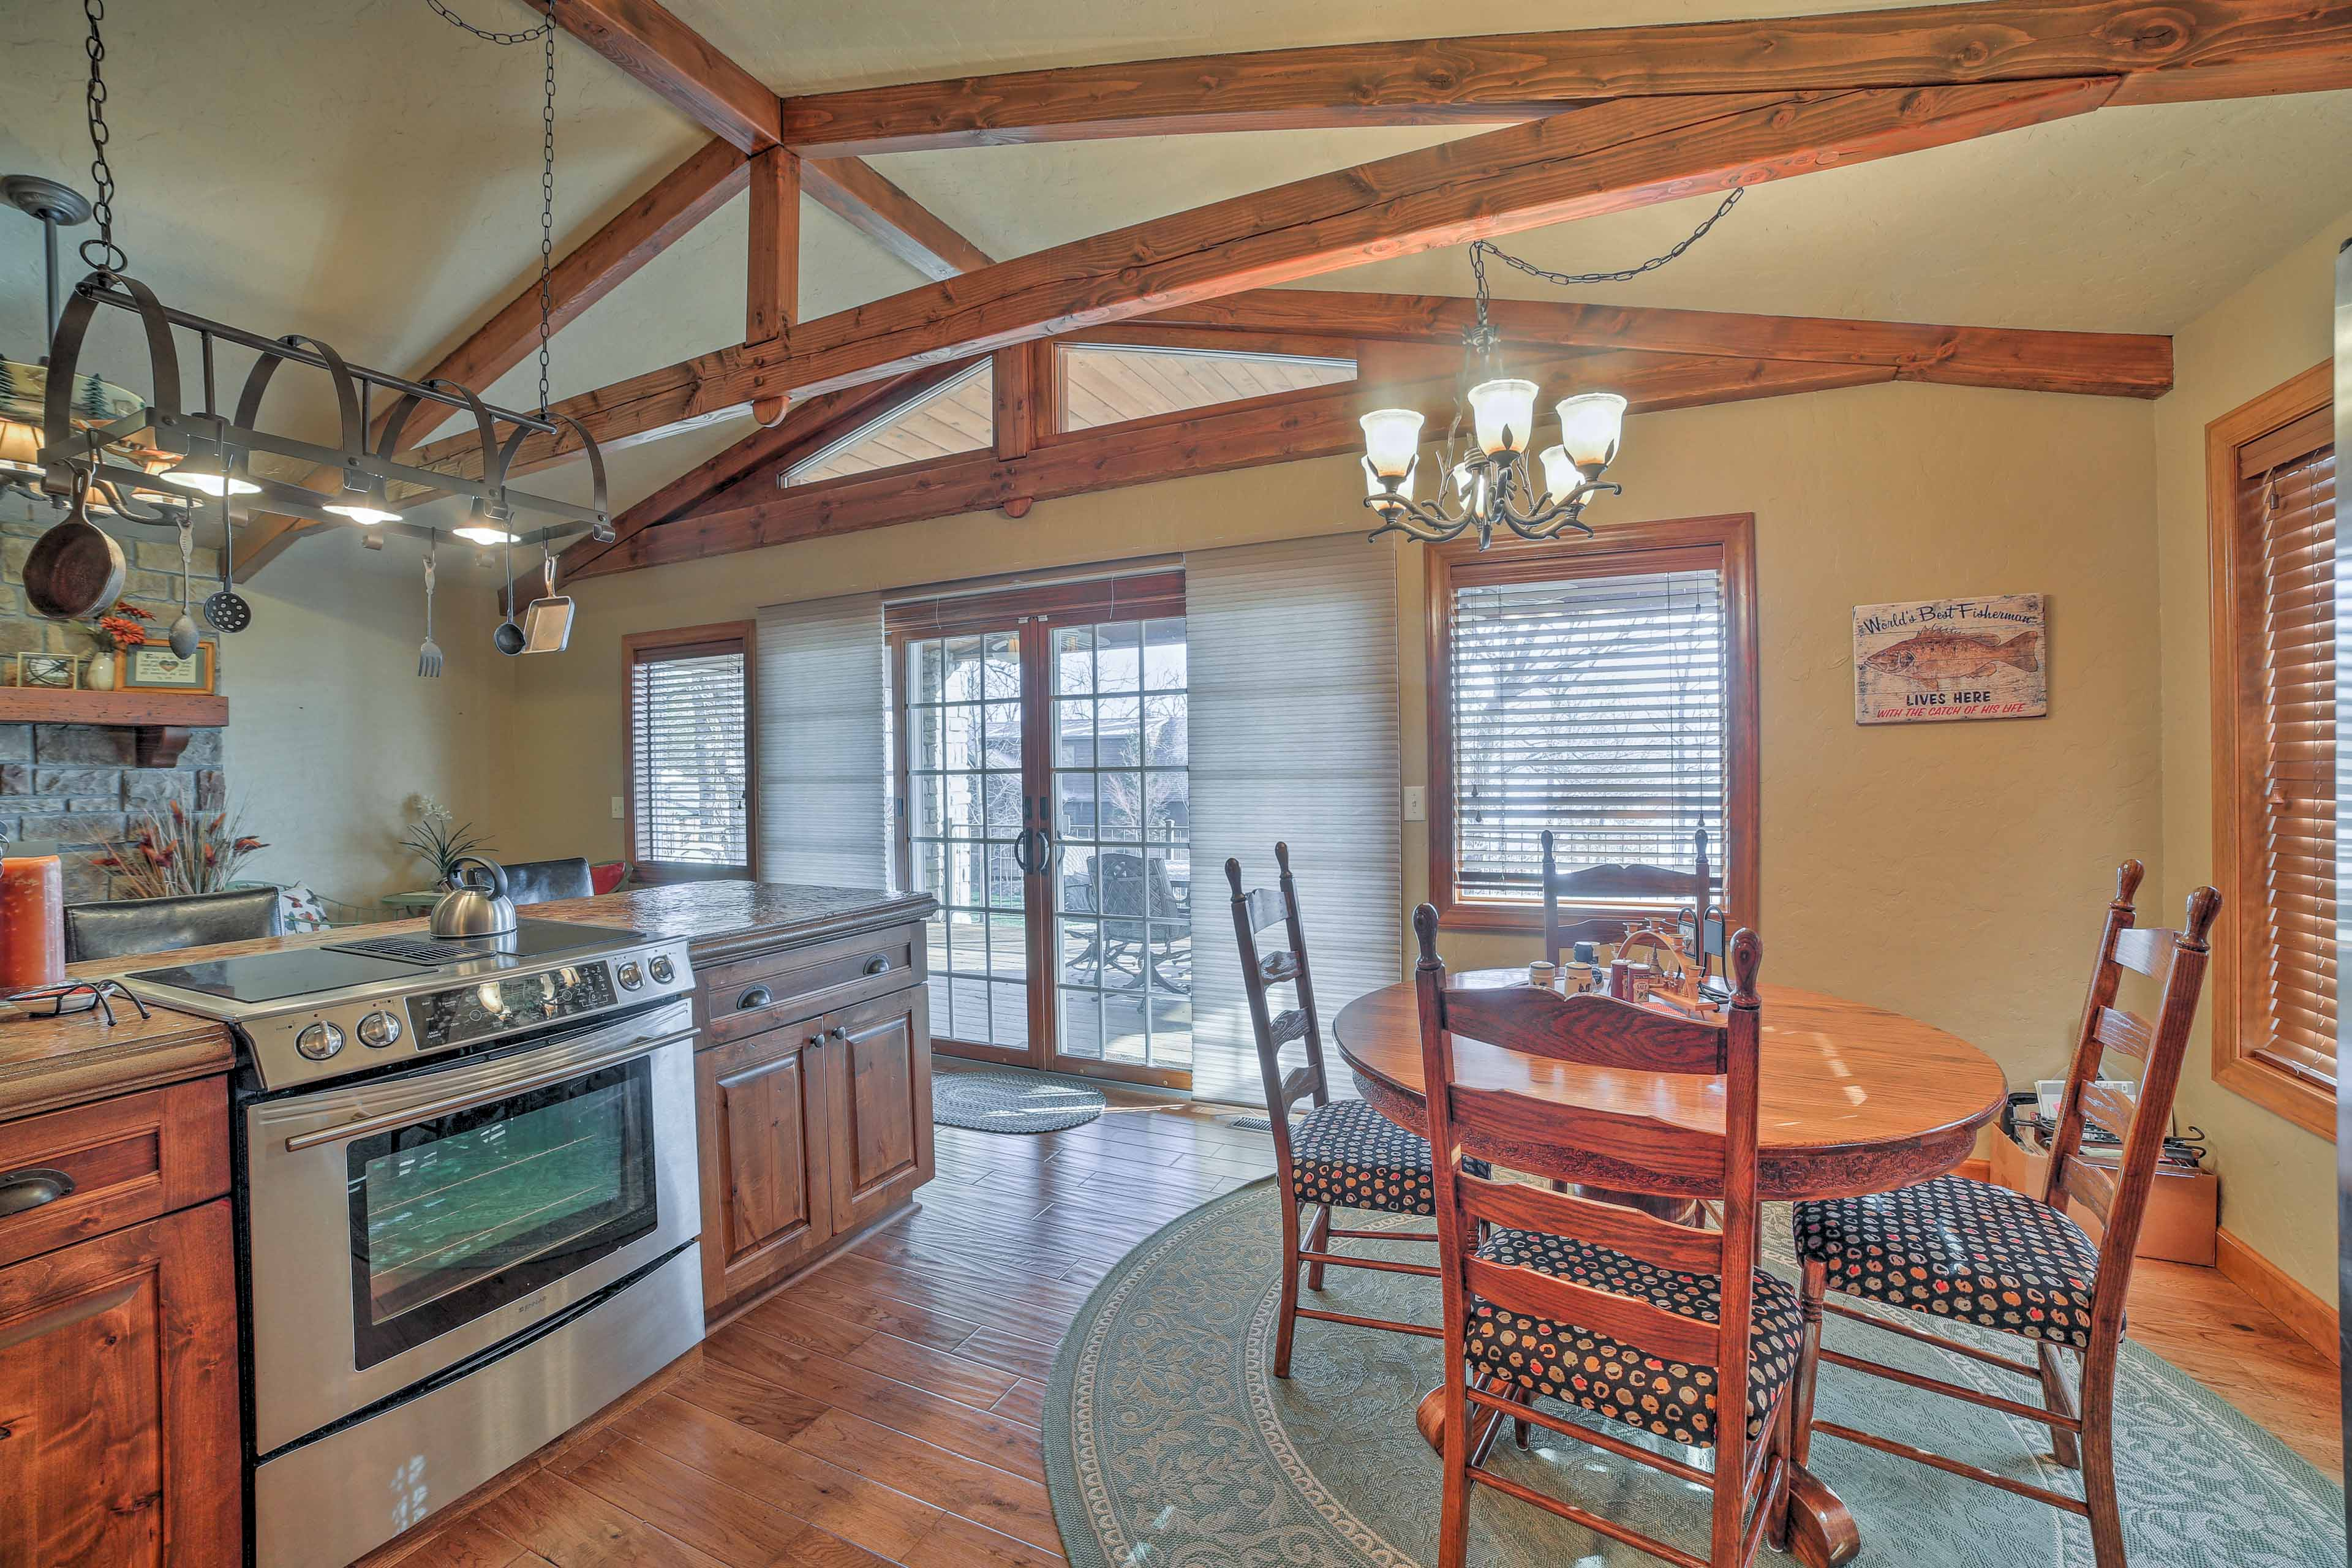 You'll love the farmhouse-meets-modern decor and large kitchen with views.